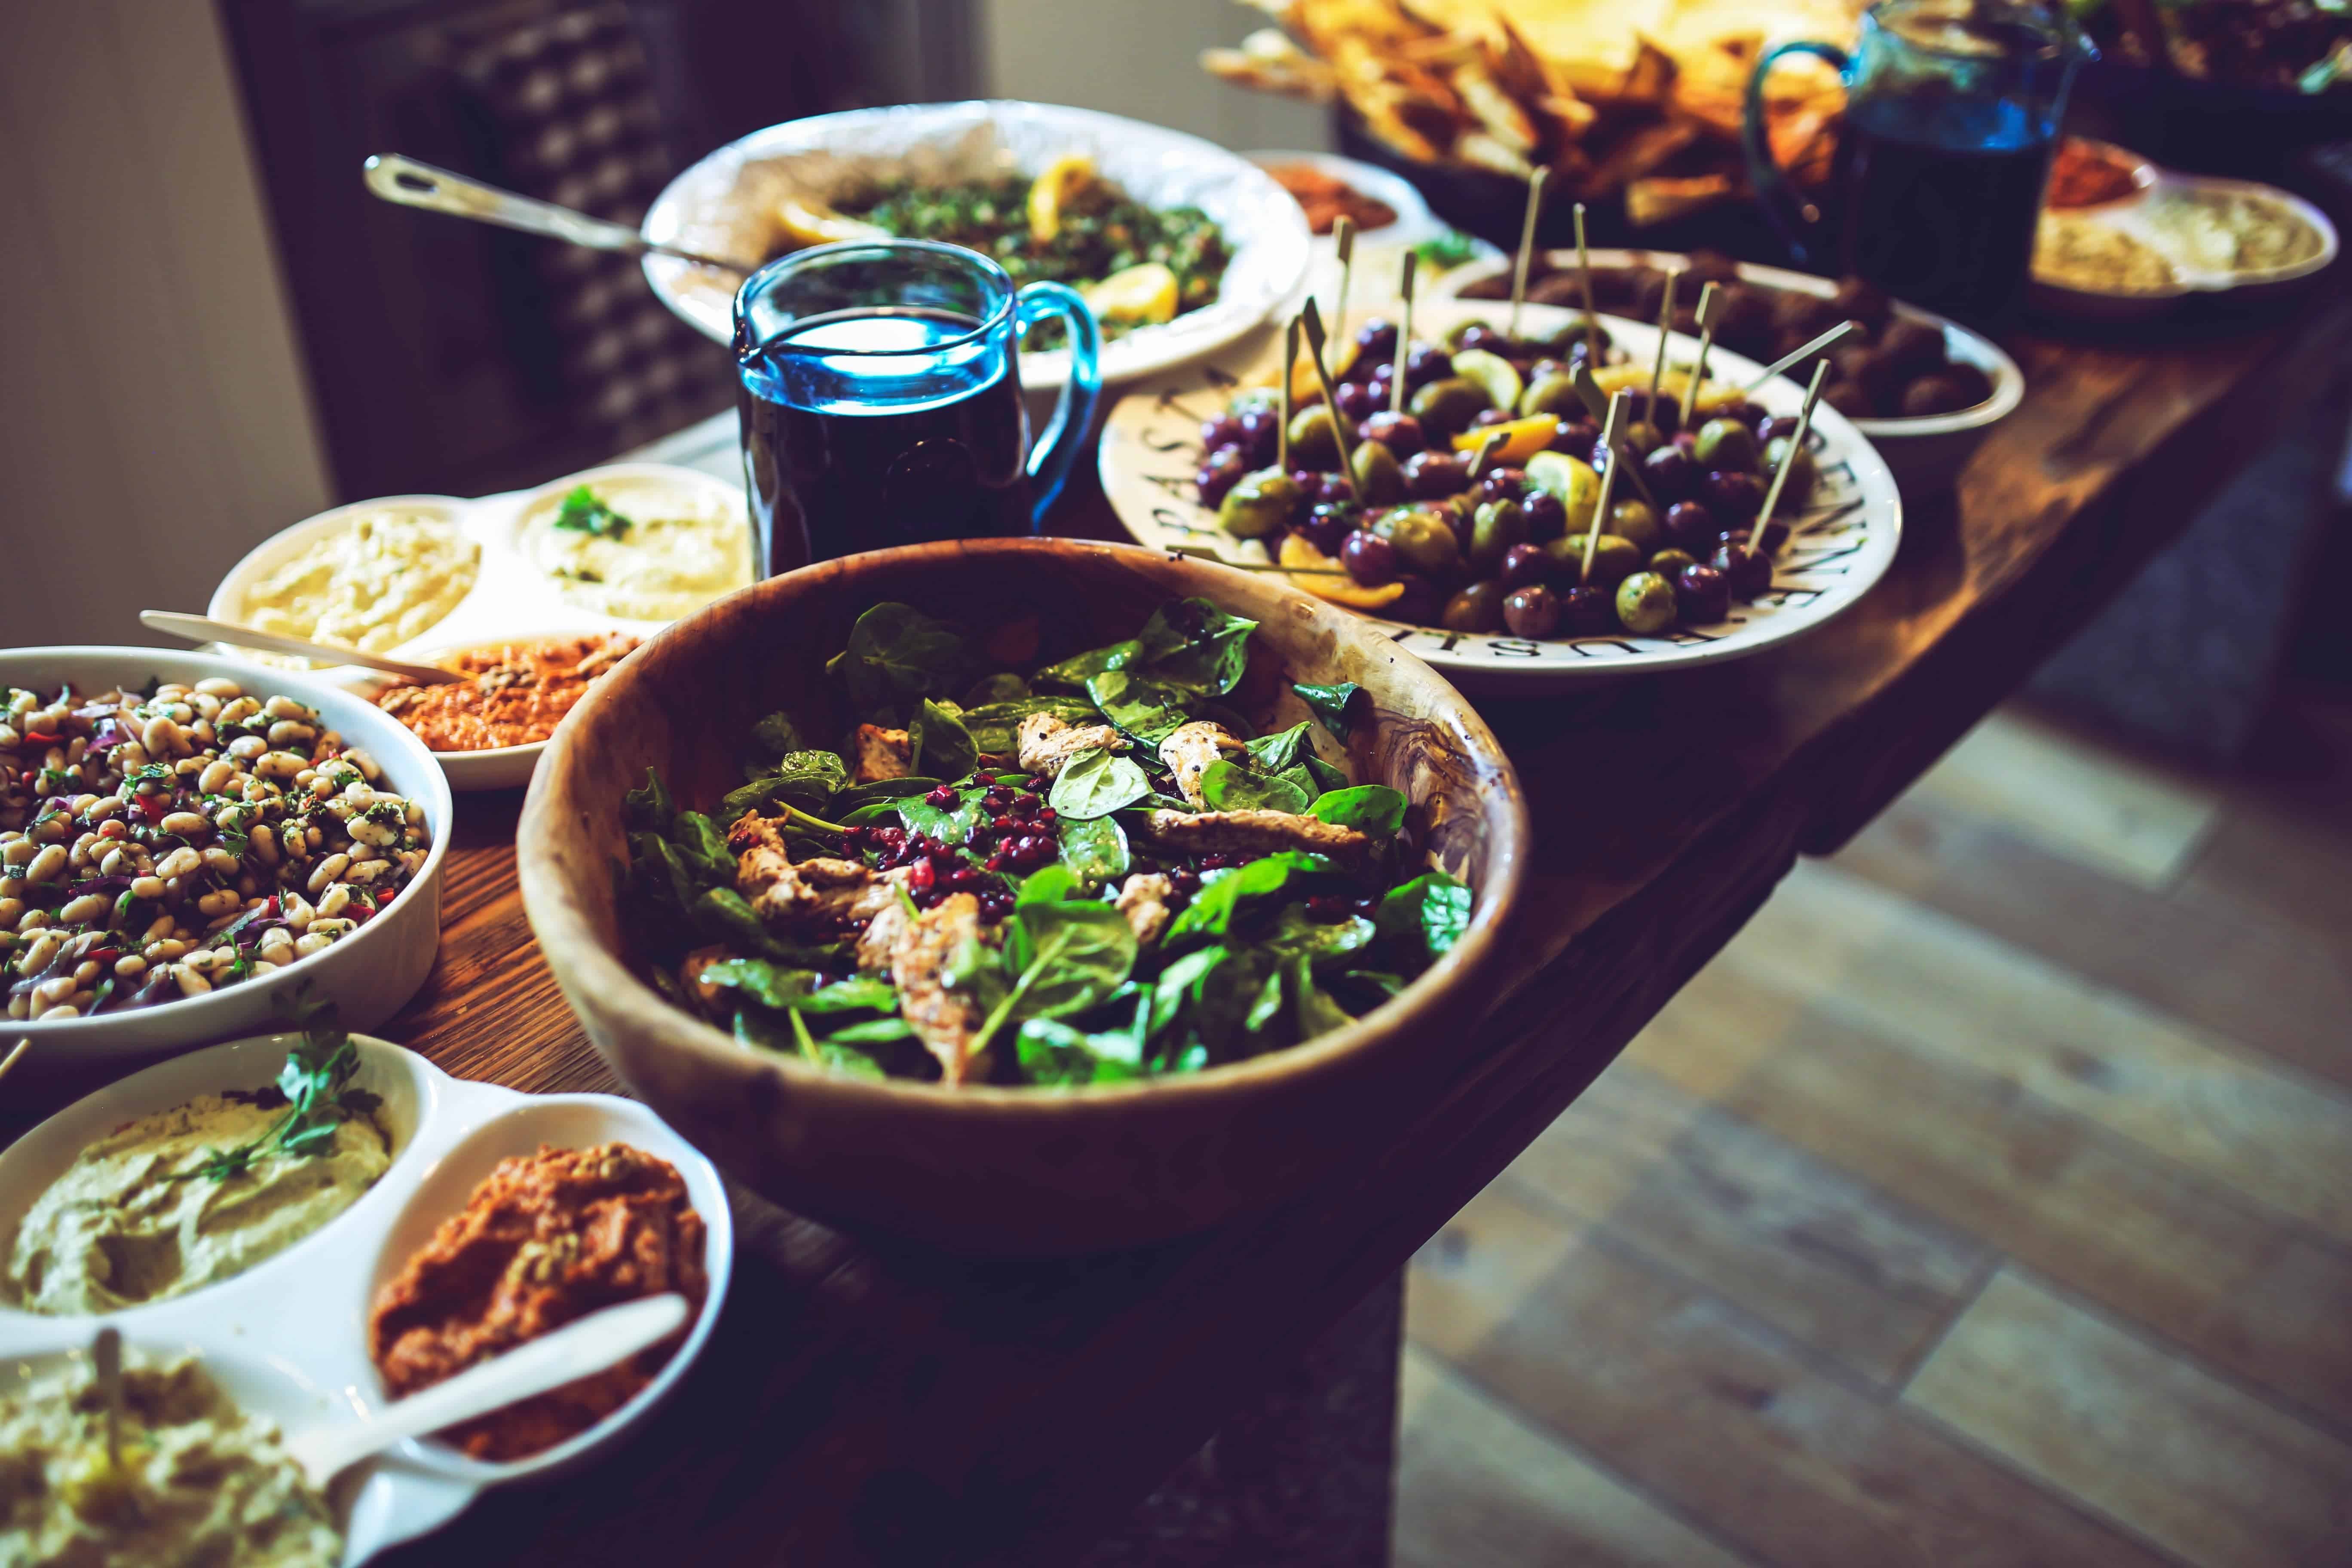 table full of food, meal planning